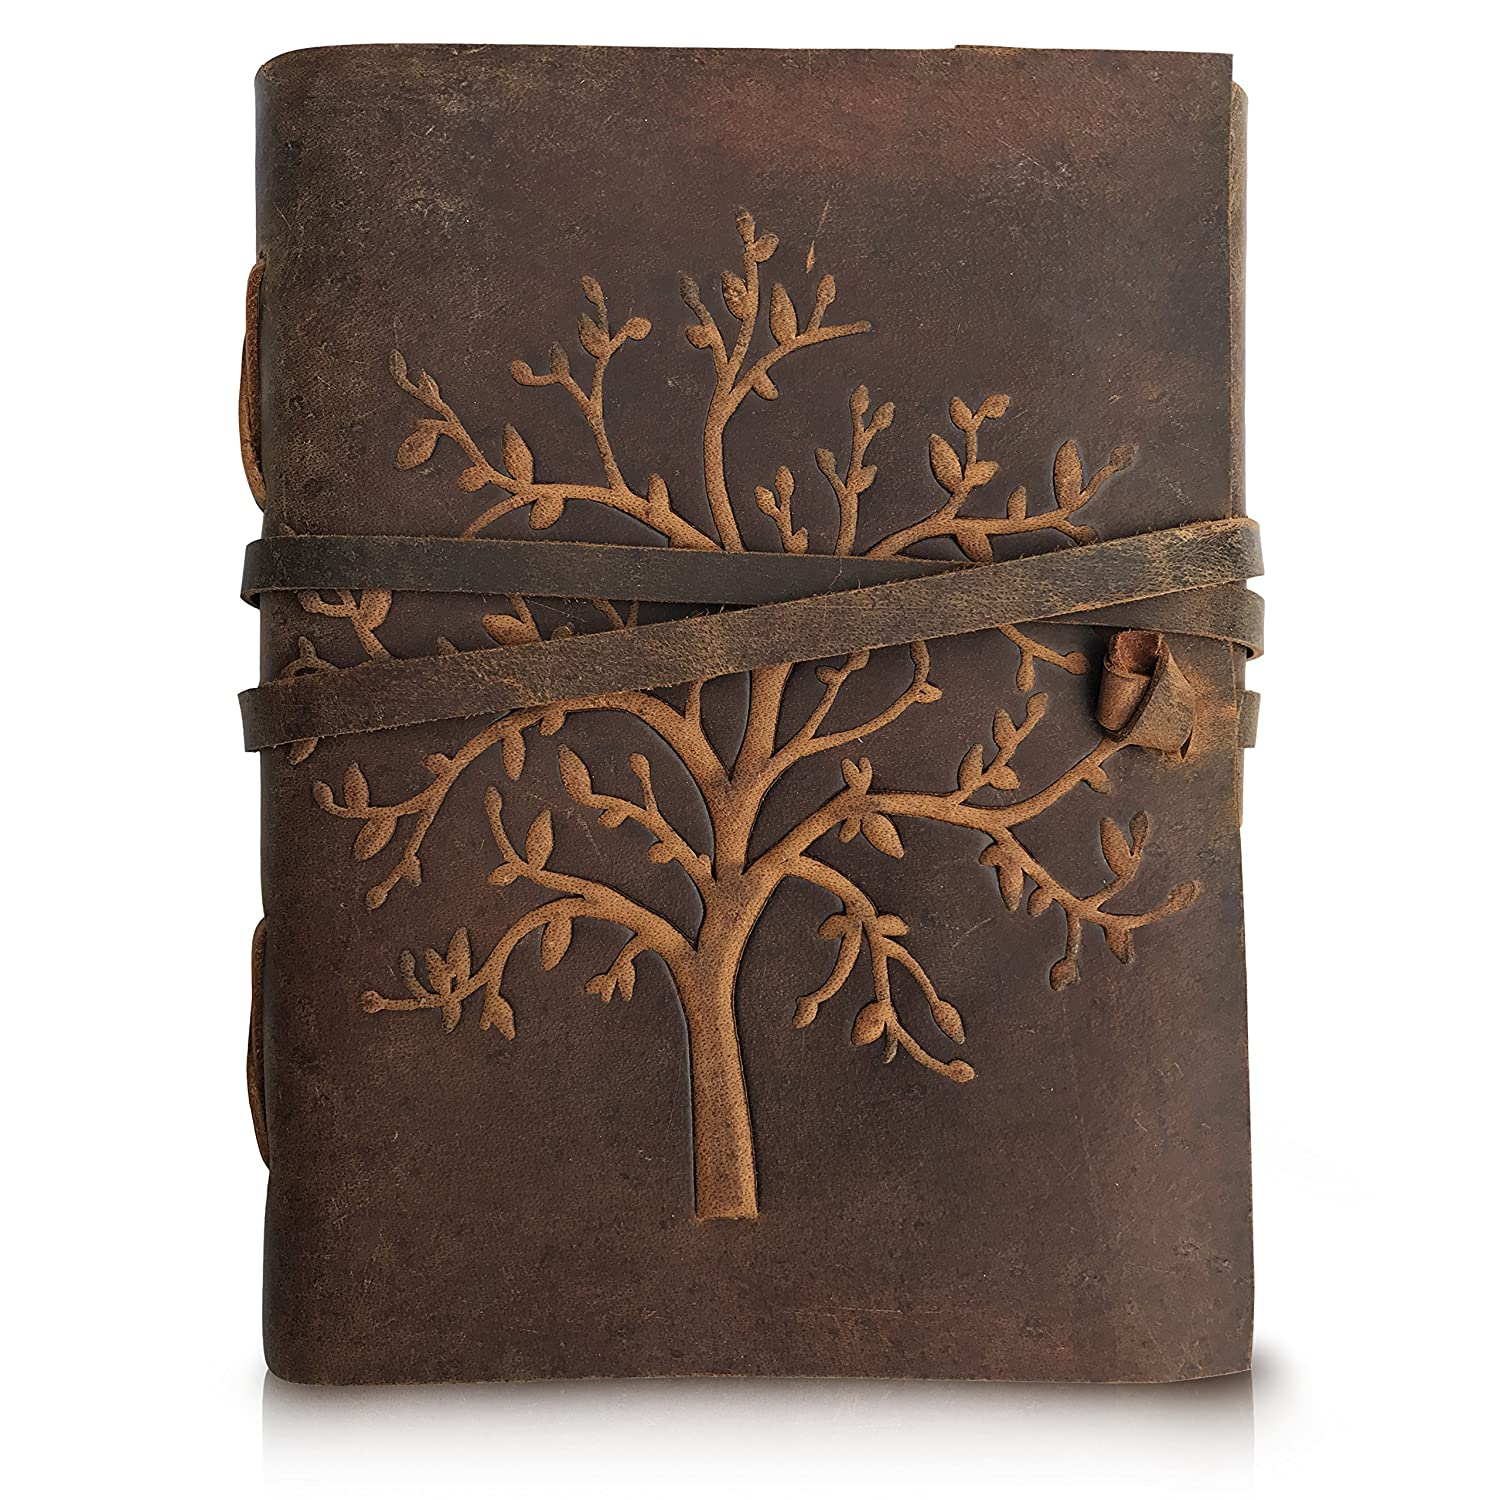 1623a9fcf832 Leather Journal Tree of Life - Writing Notebook Handmade Leather Bound  Daily Notepads for Men and Women Blank Paper Large 8 x 6 Inches - Gift for  Art ...